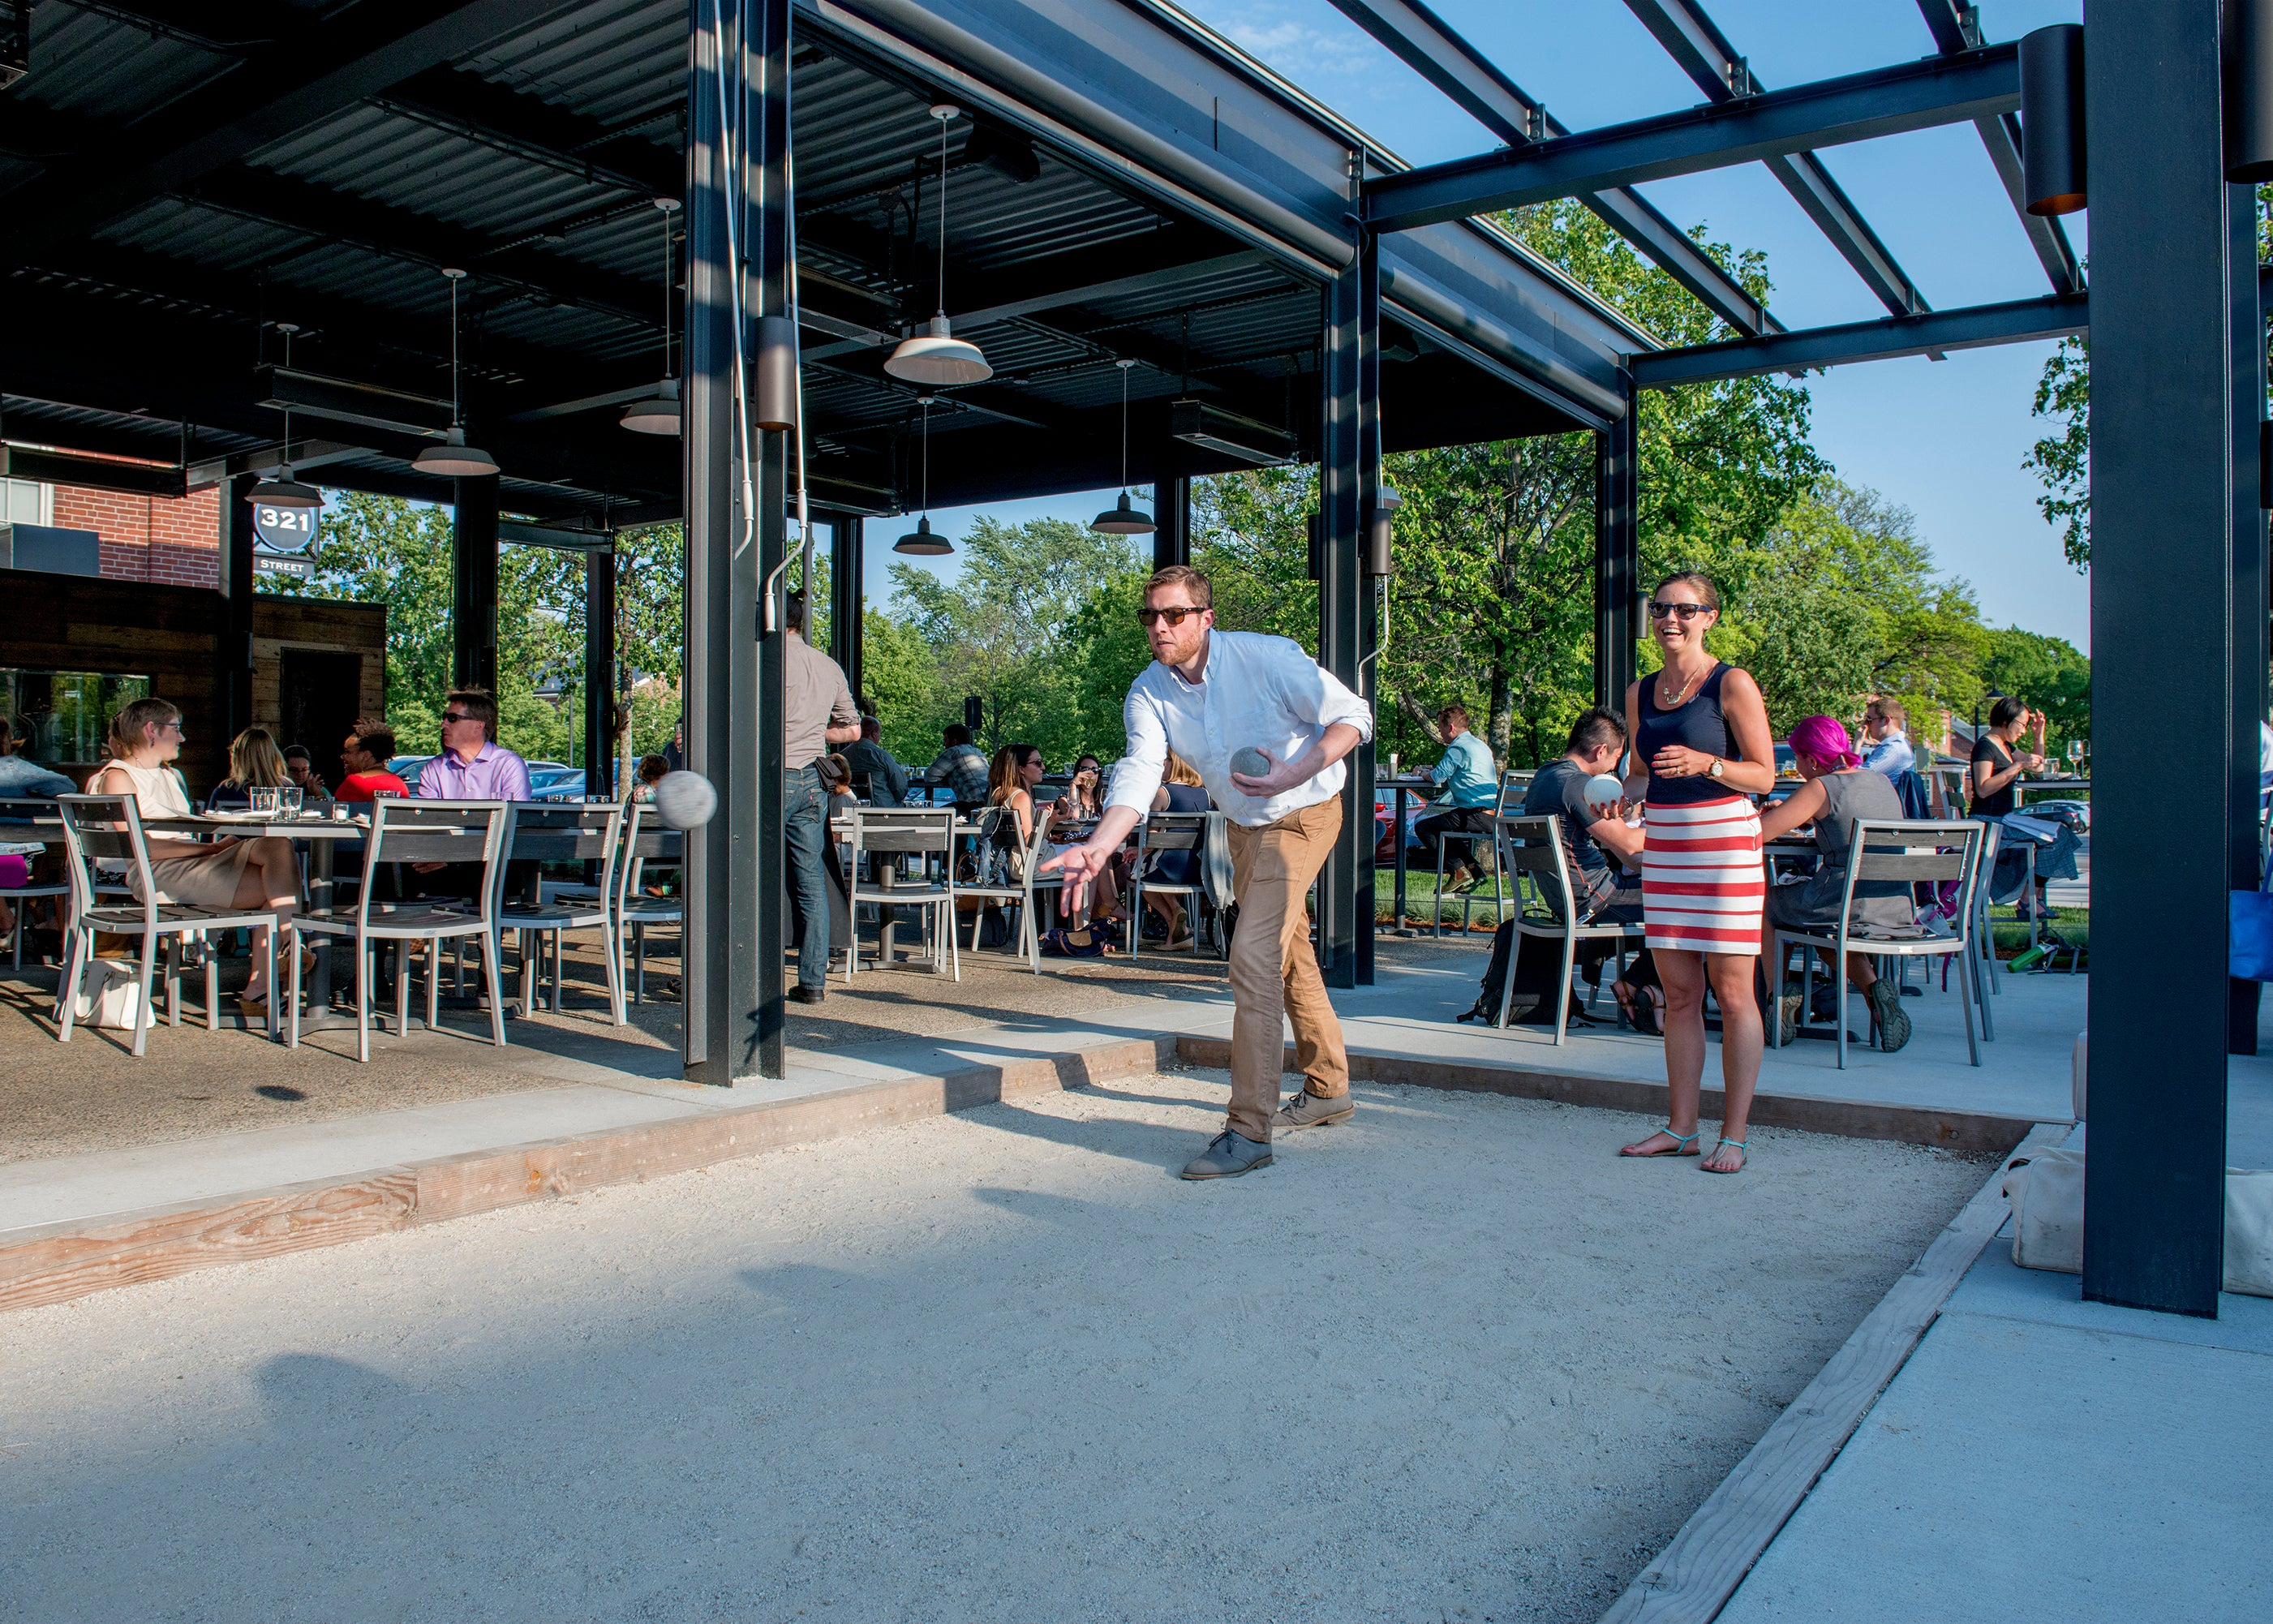 The bocce court at Branch Line